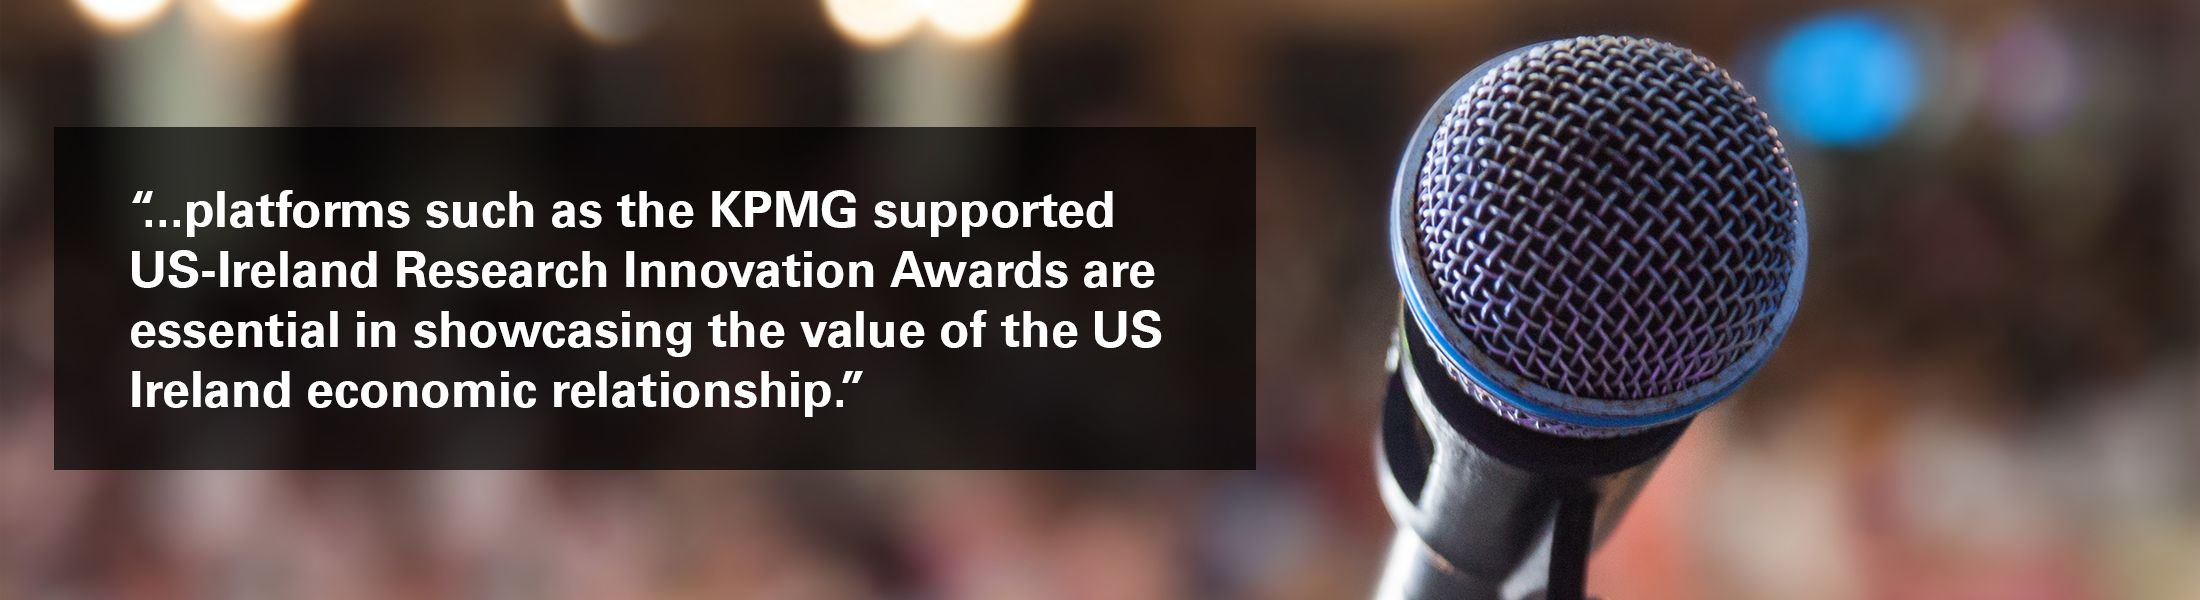 "Image of microphone with ""...platforms such as the KPMG supported US-Ireland Research Innovation Awards are essential in showcasing the value of the US Ireland economic relationship."" overlaid"